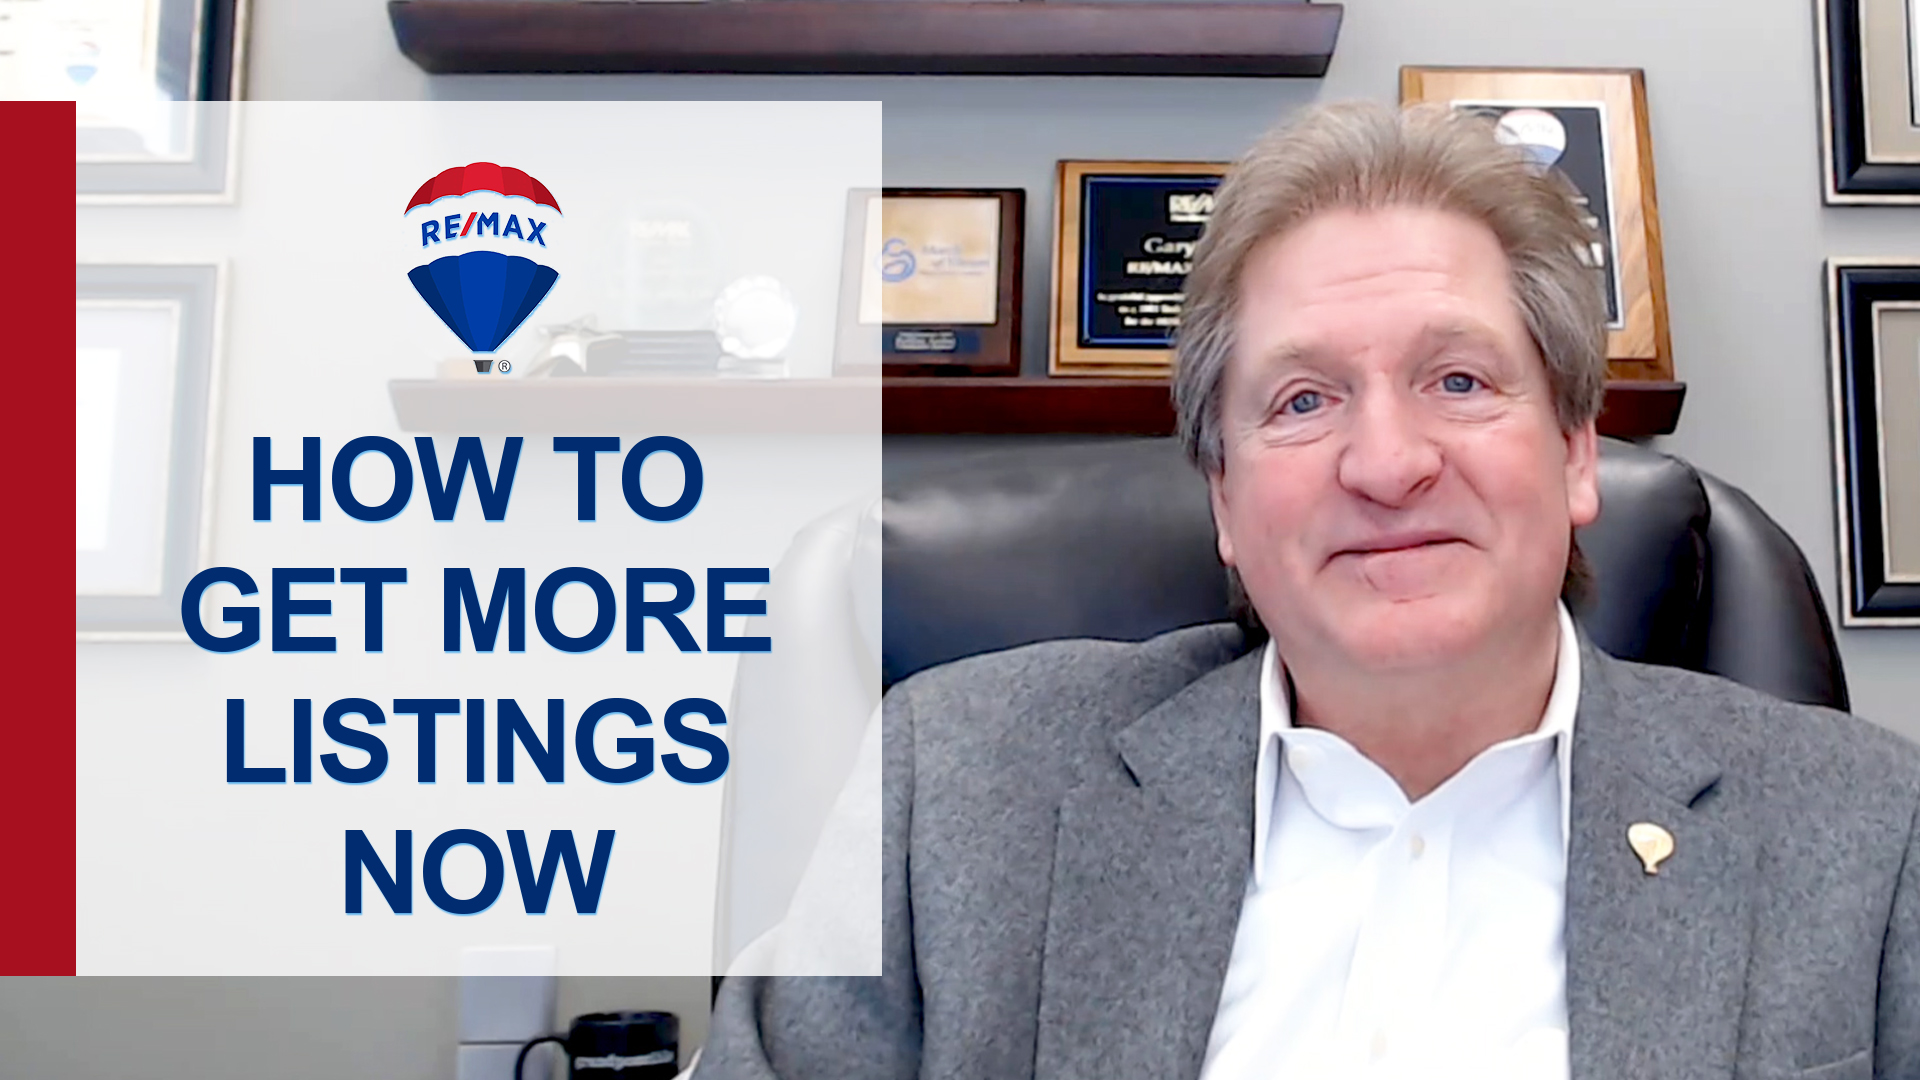 The 4 Steps to Getting Listings Now